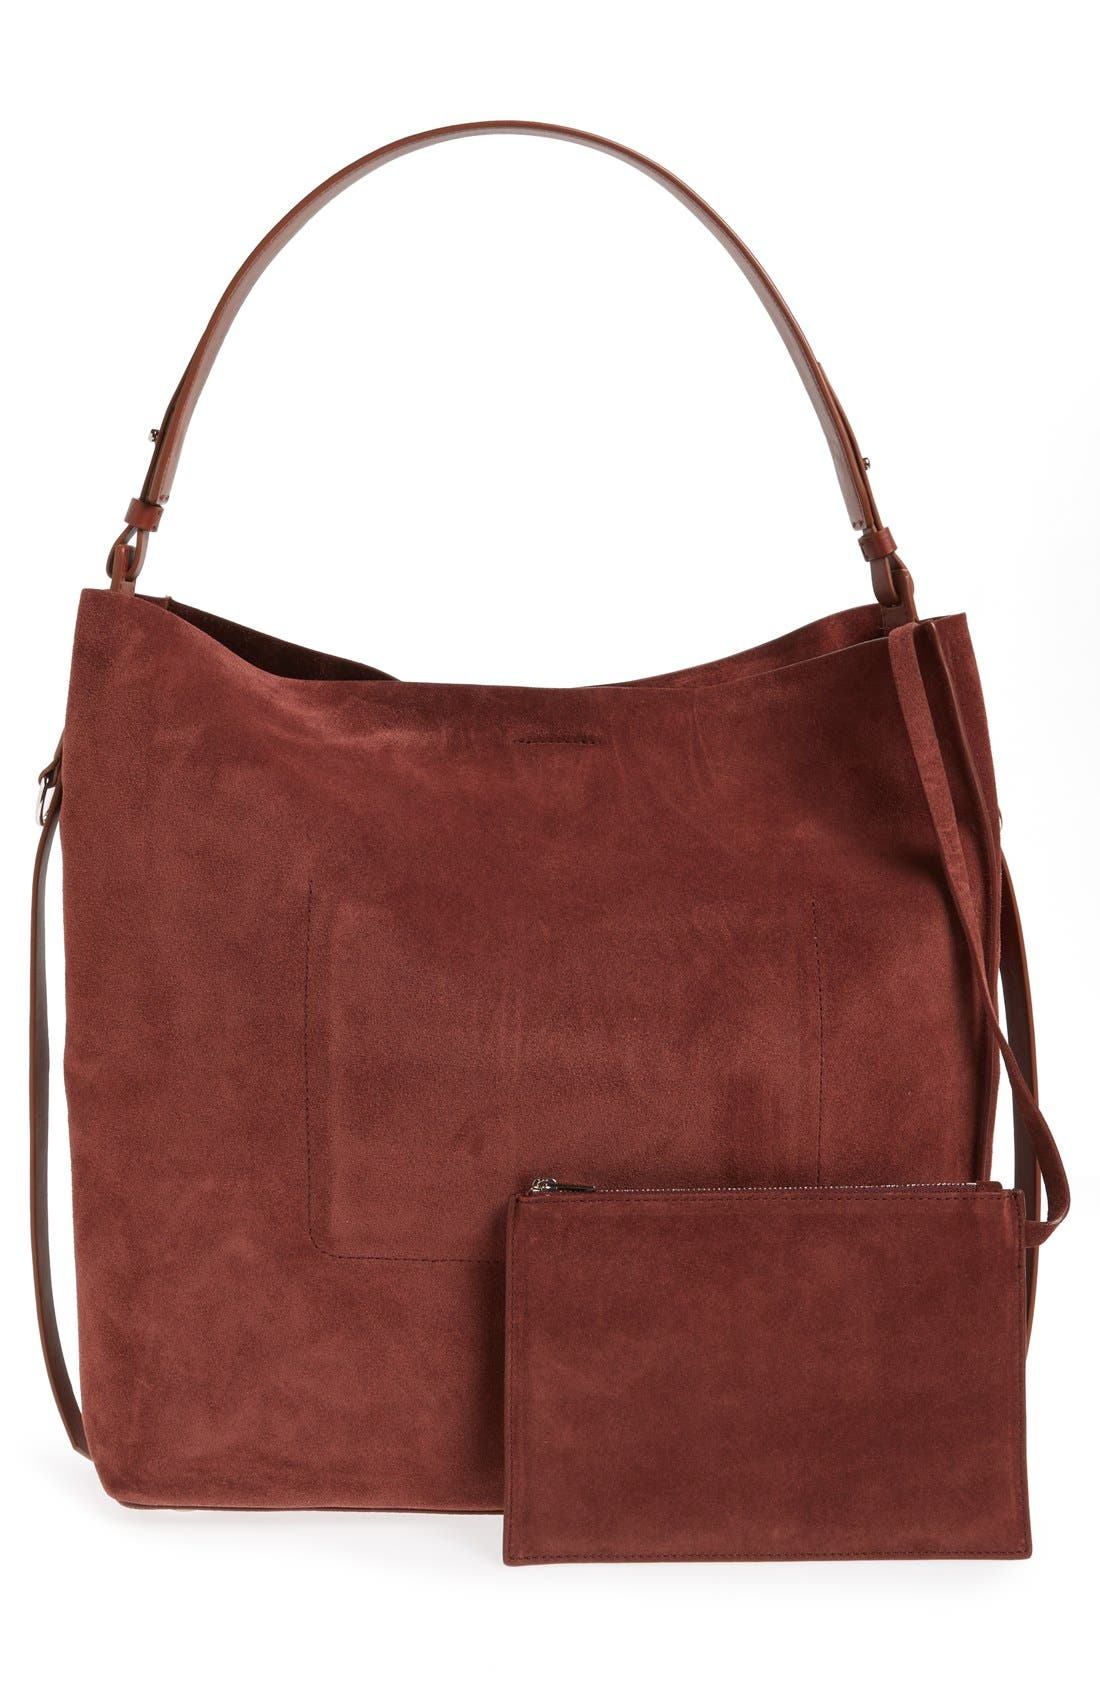 'Paradise - North/South' Suede Tote,                             Alternate thumbnail 3, color,                             Brandy/ Brick Brown